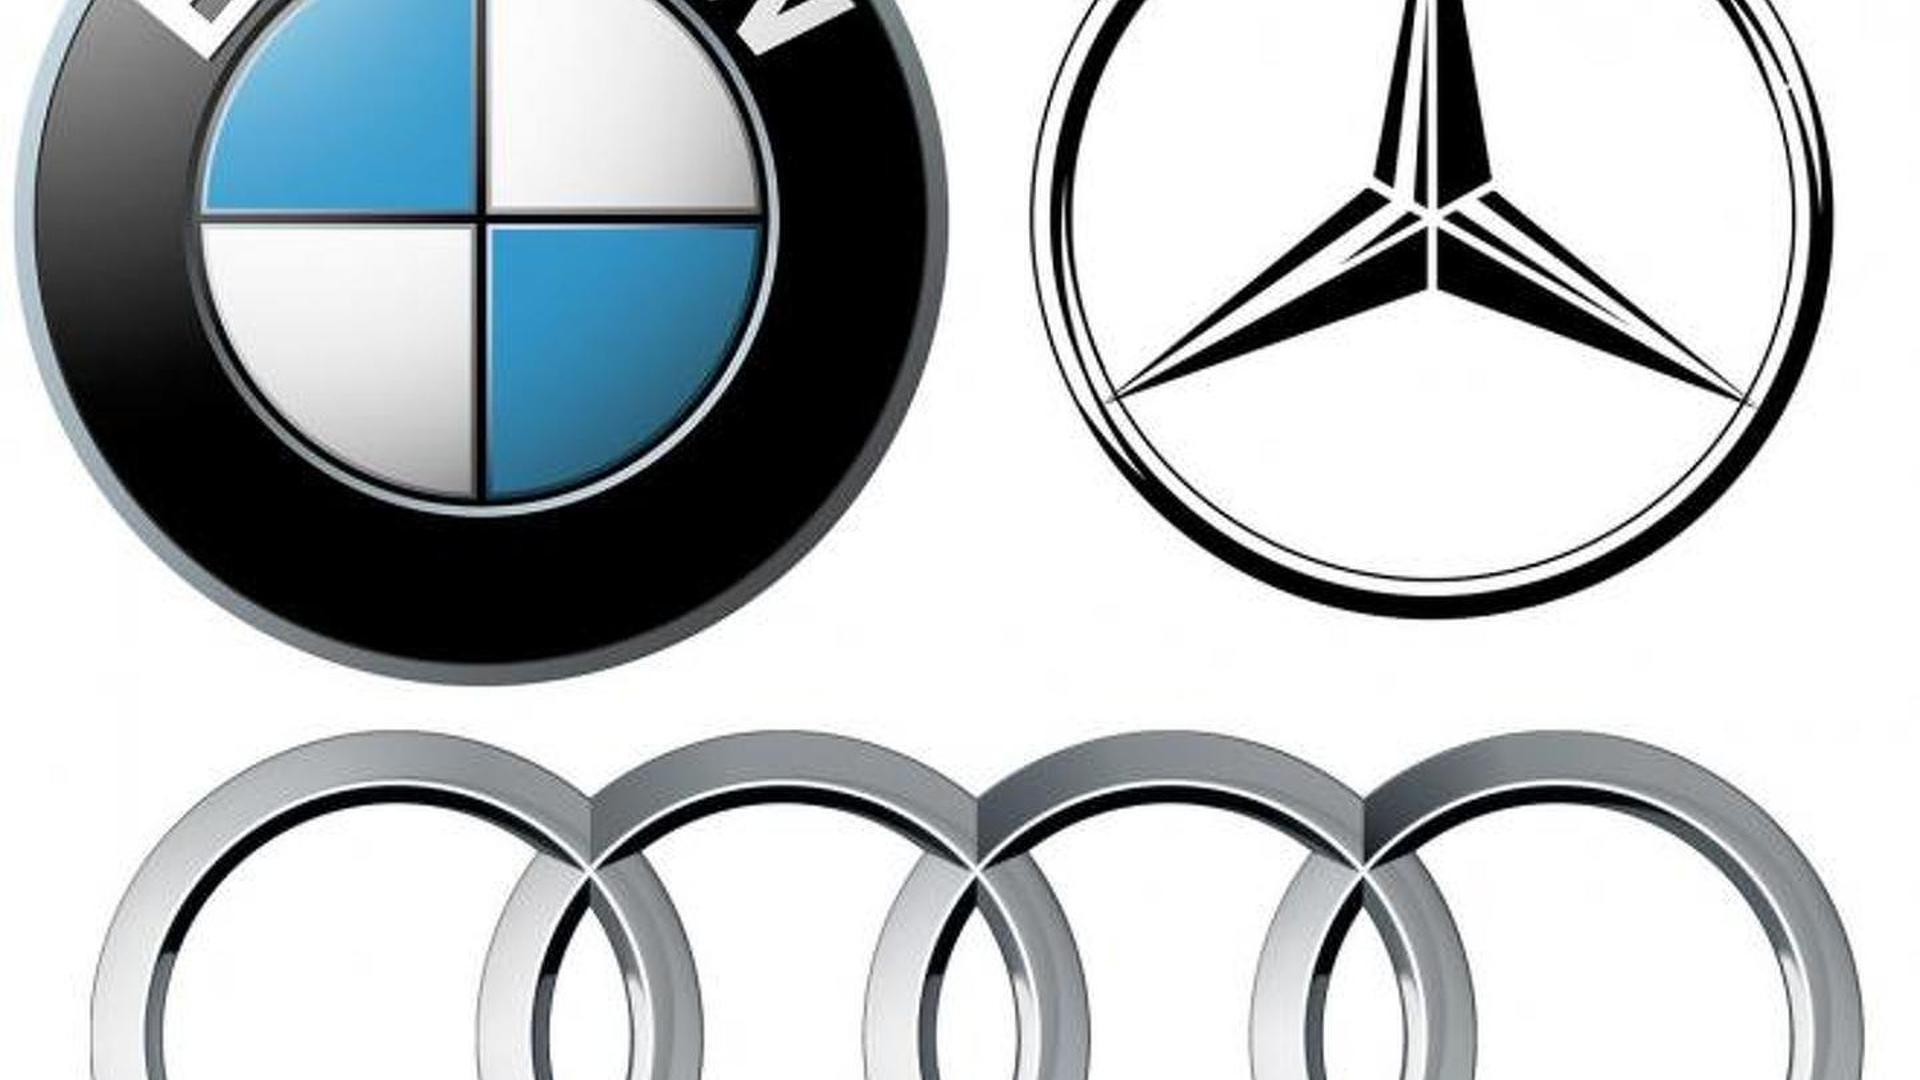 MercedesBenz Cant Keep Up With BMW And Audi In Global Luxury Car - Audi bmw benz